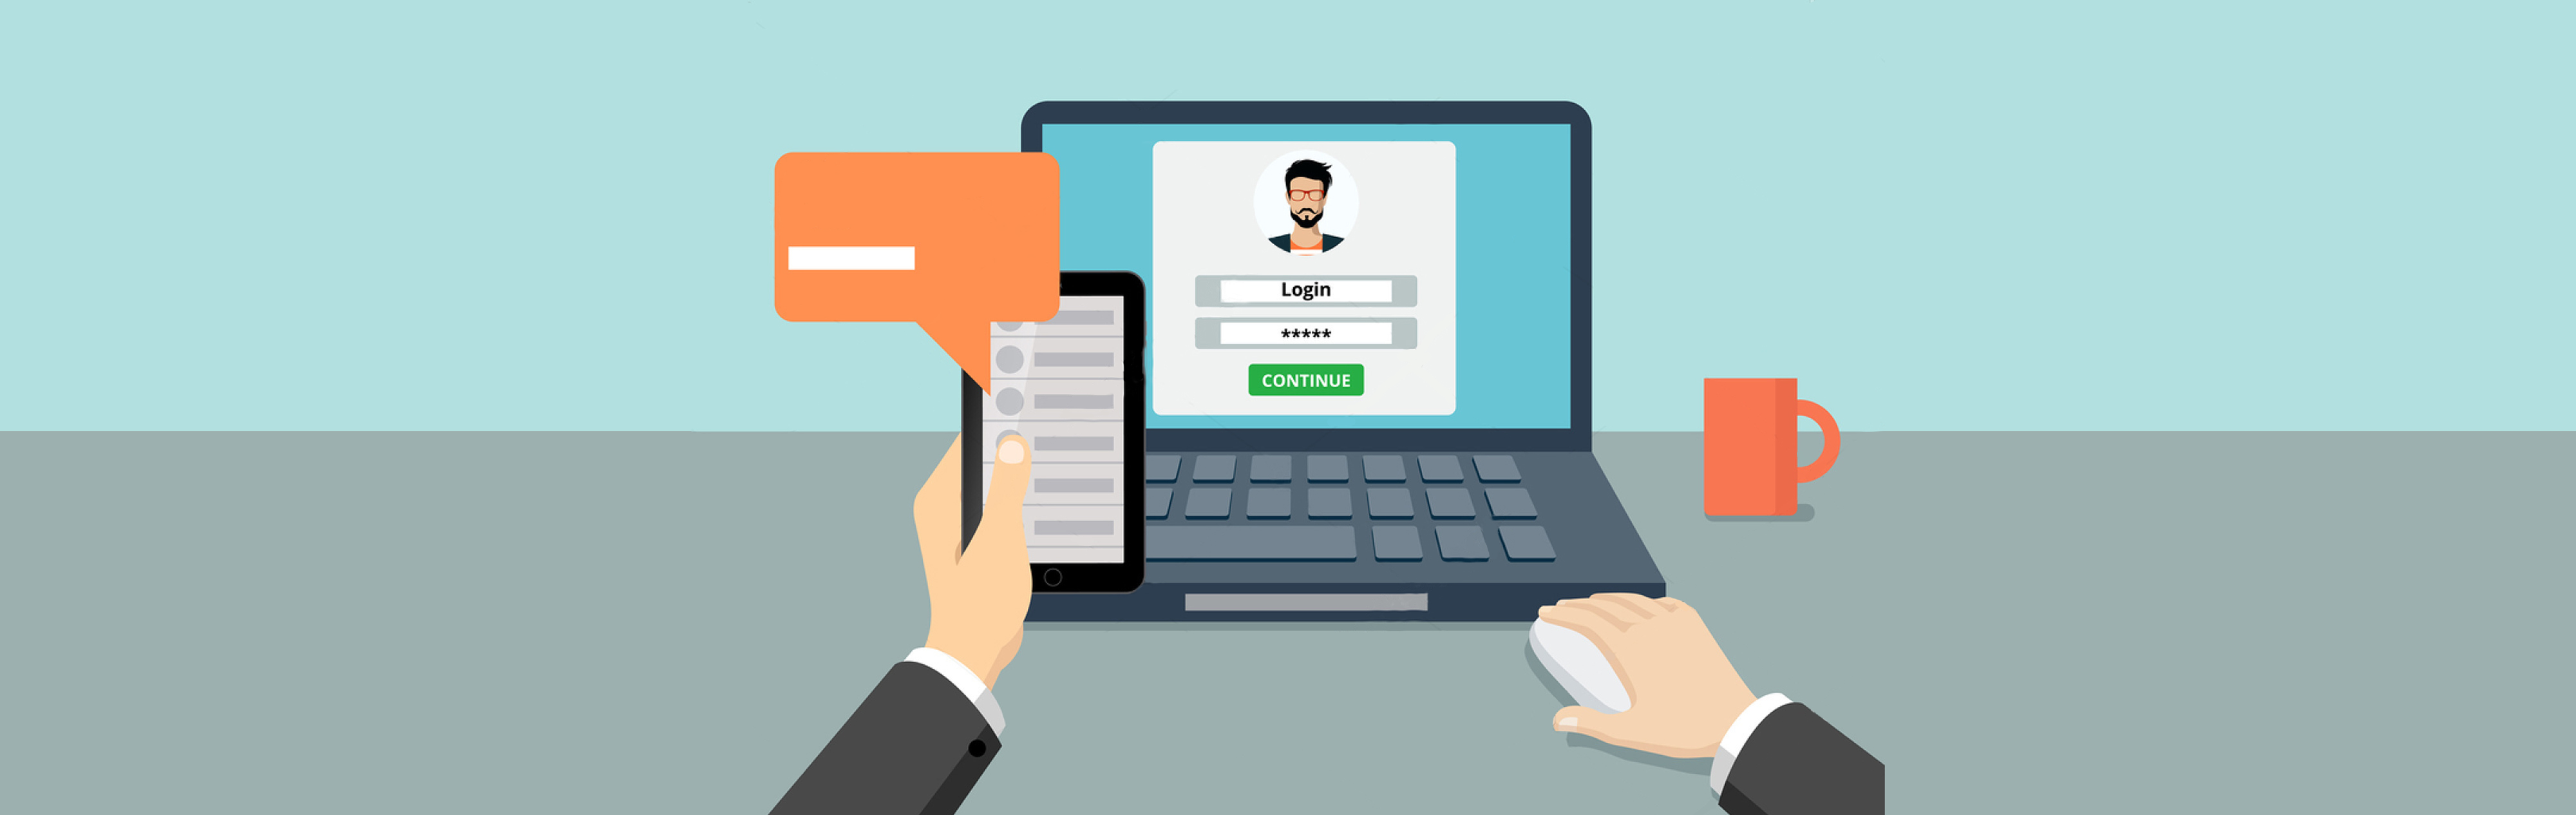 Why End-users Must Enable Two Factor Authentication